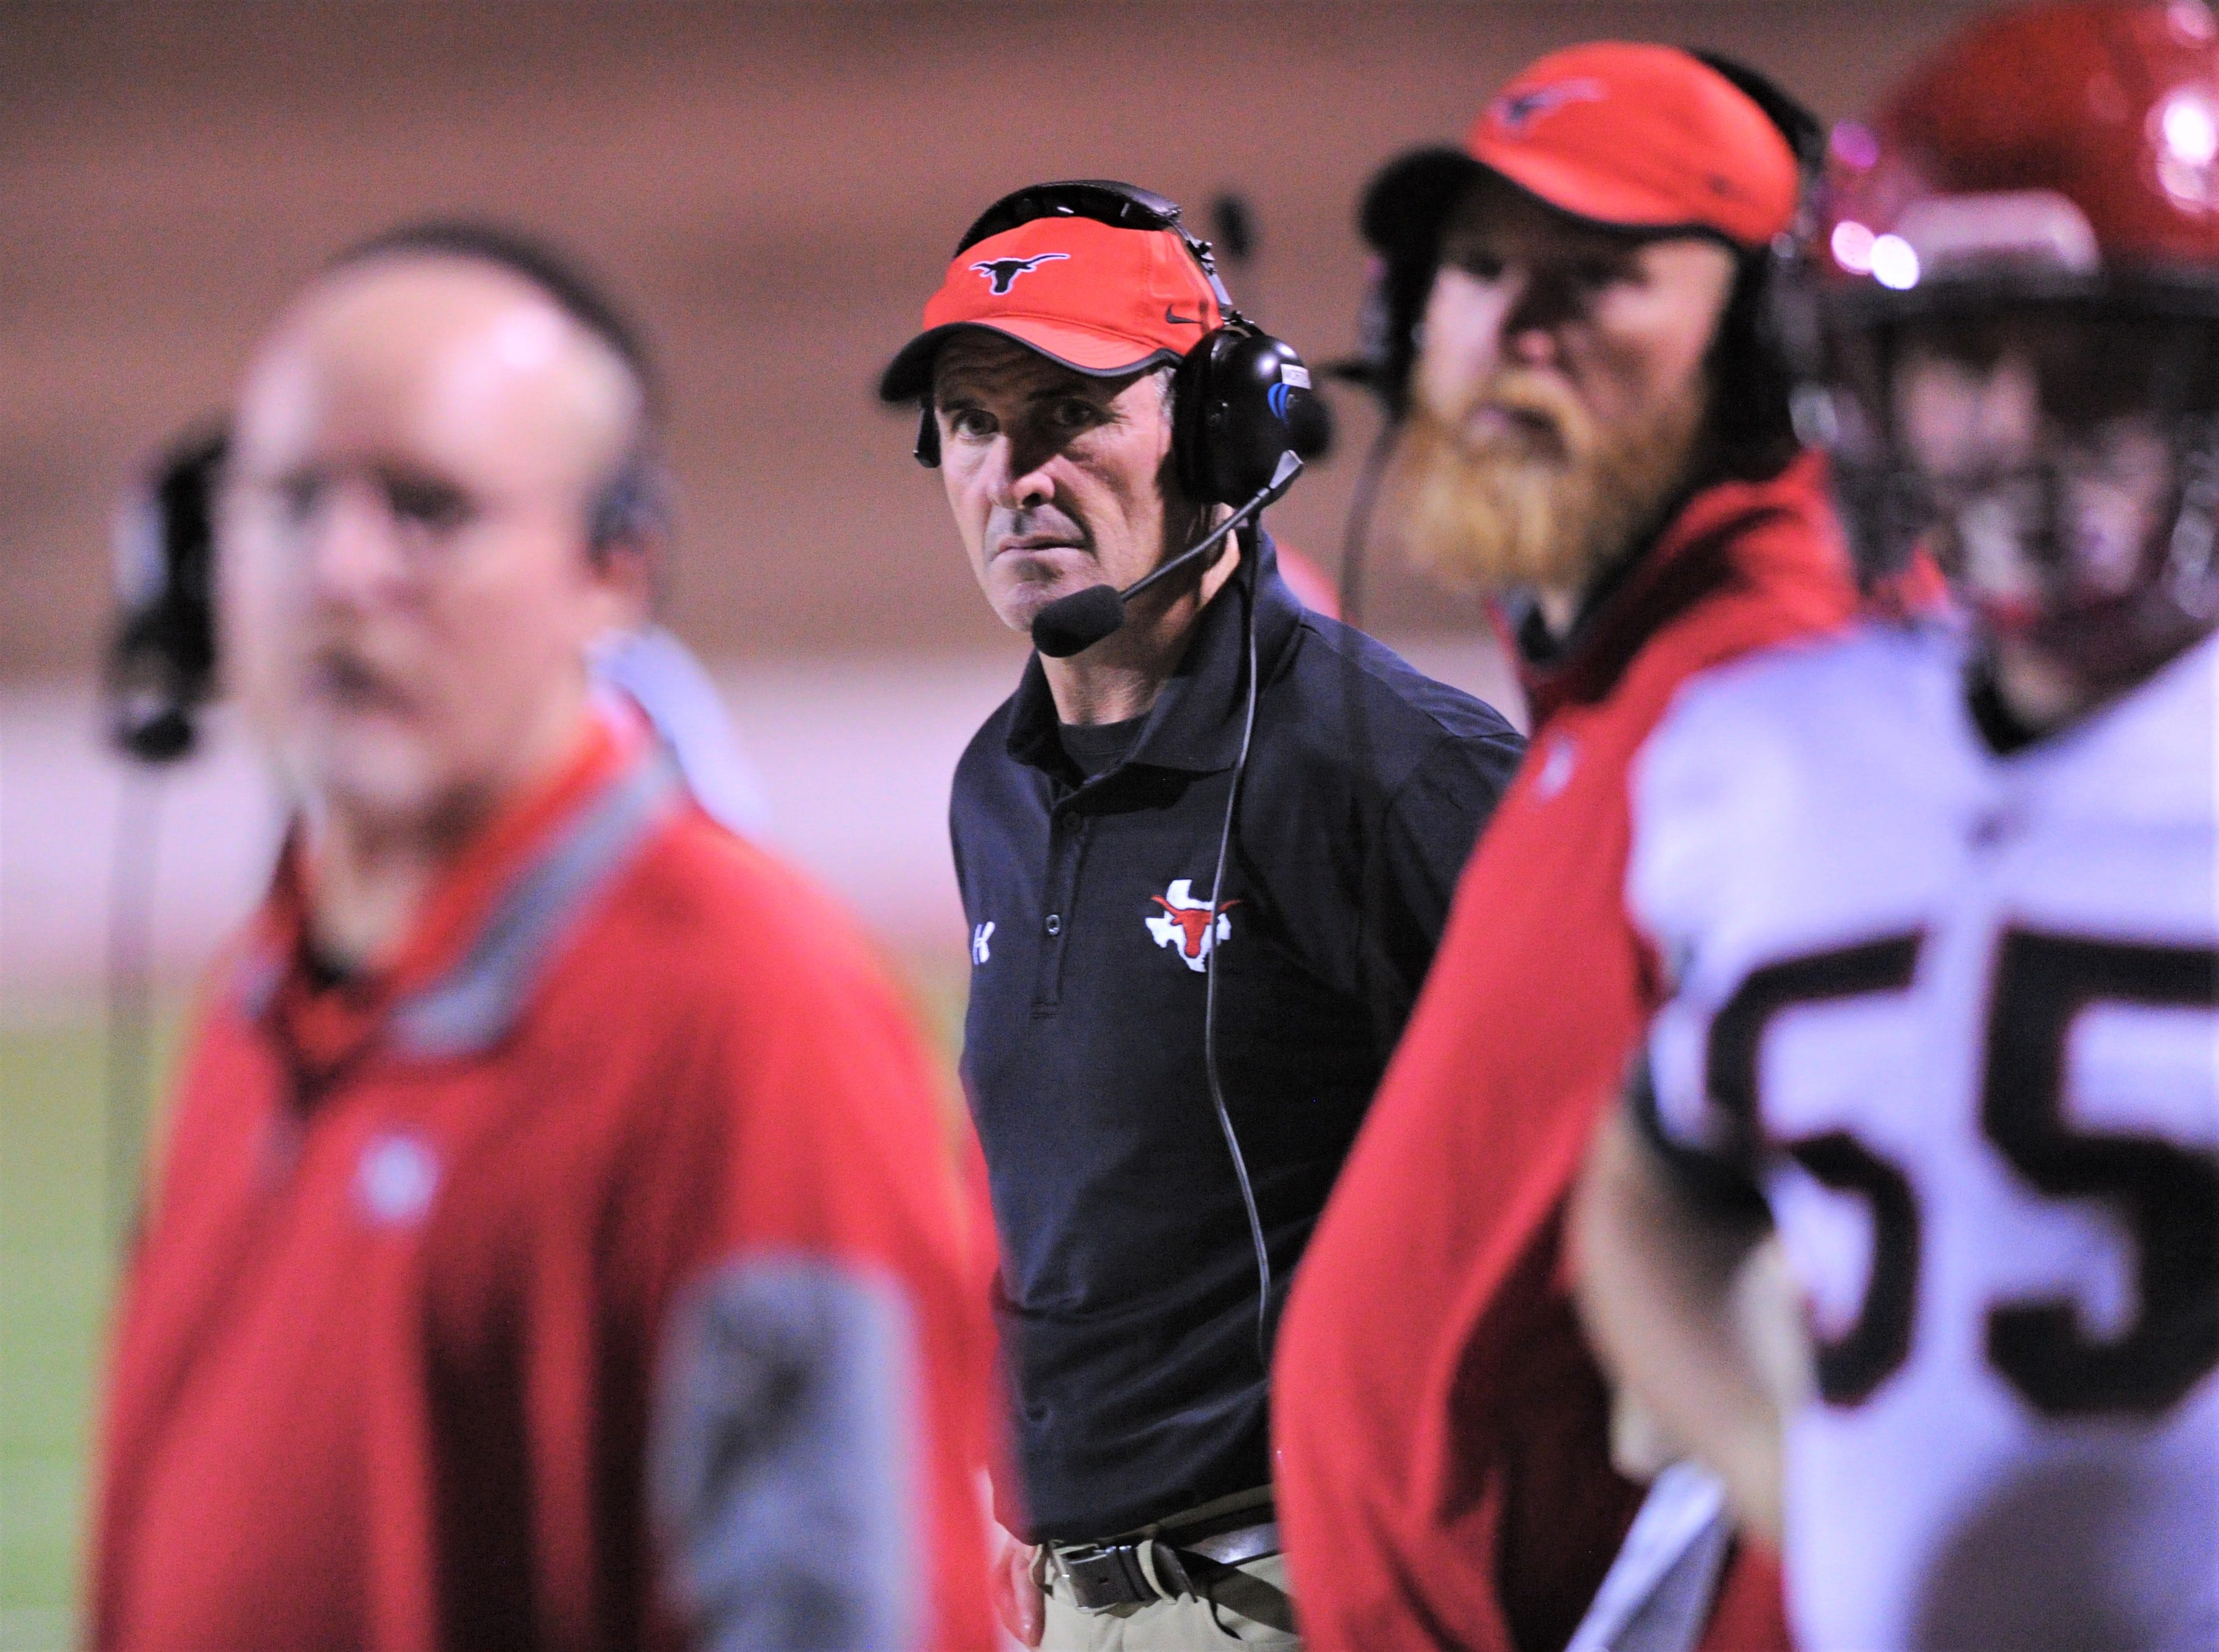 Eastland coach James Morton , center, watches his team play against Shallowater in the the fourth quarter. Shallowater beat the Mavericks 56-21 in the Region I-3A Division I semifinal playoff game Thursday, Nov. 29, 2018, at the Mustang Bowl in Sweetwater.